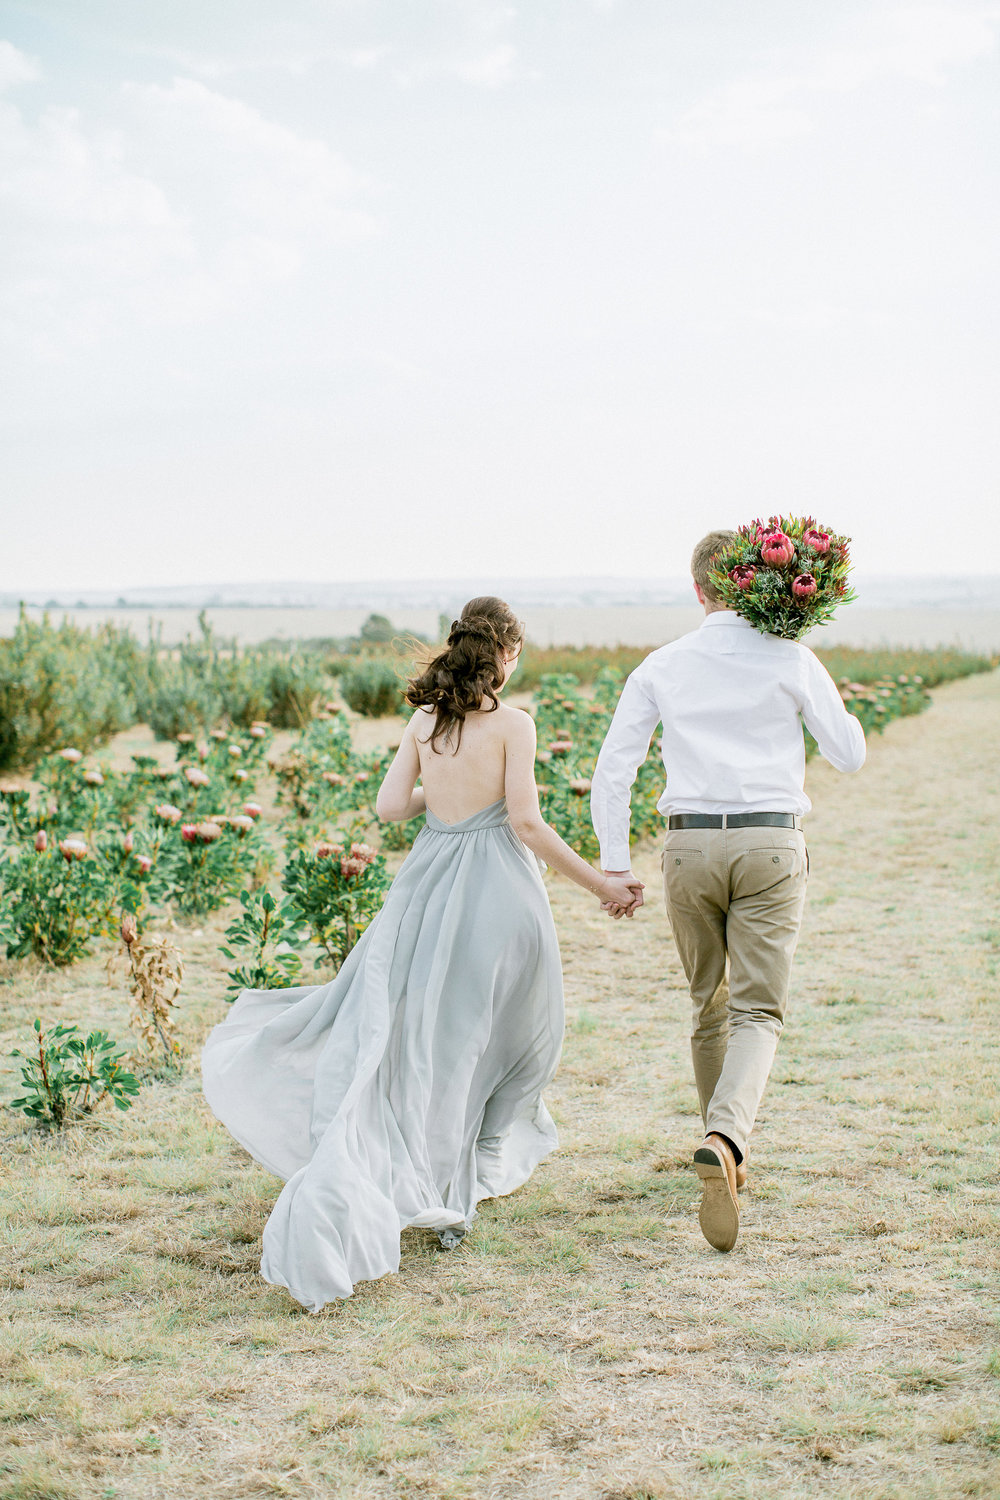 South africa wedding photographer clareece smit photography47.jpg